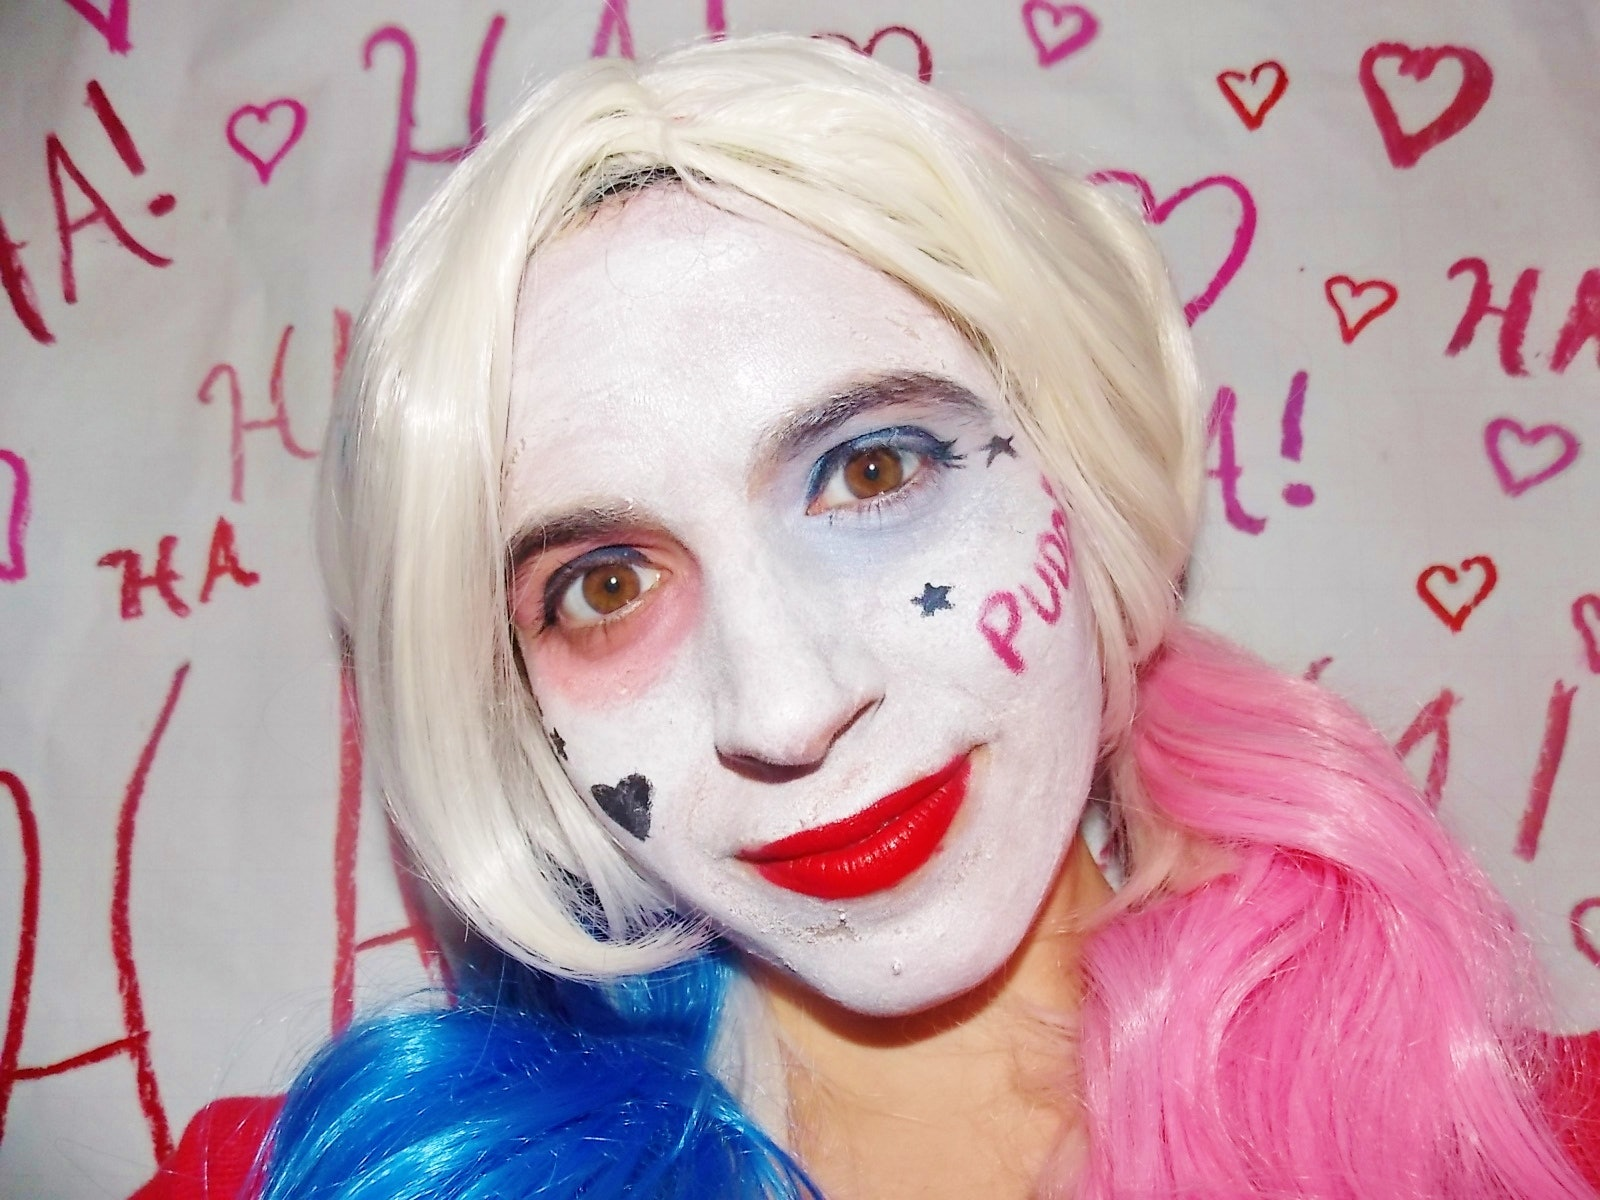 Make-up in style of Harley Quinn